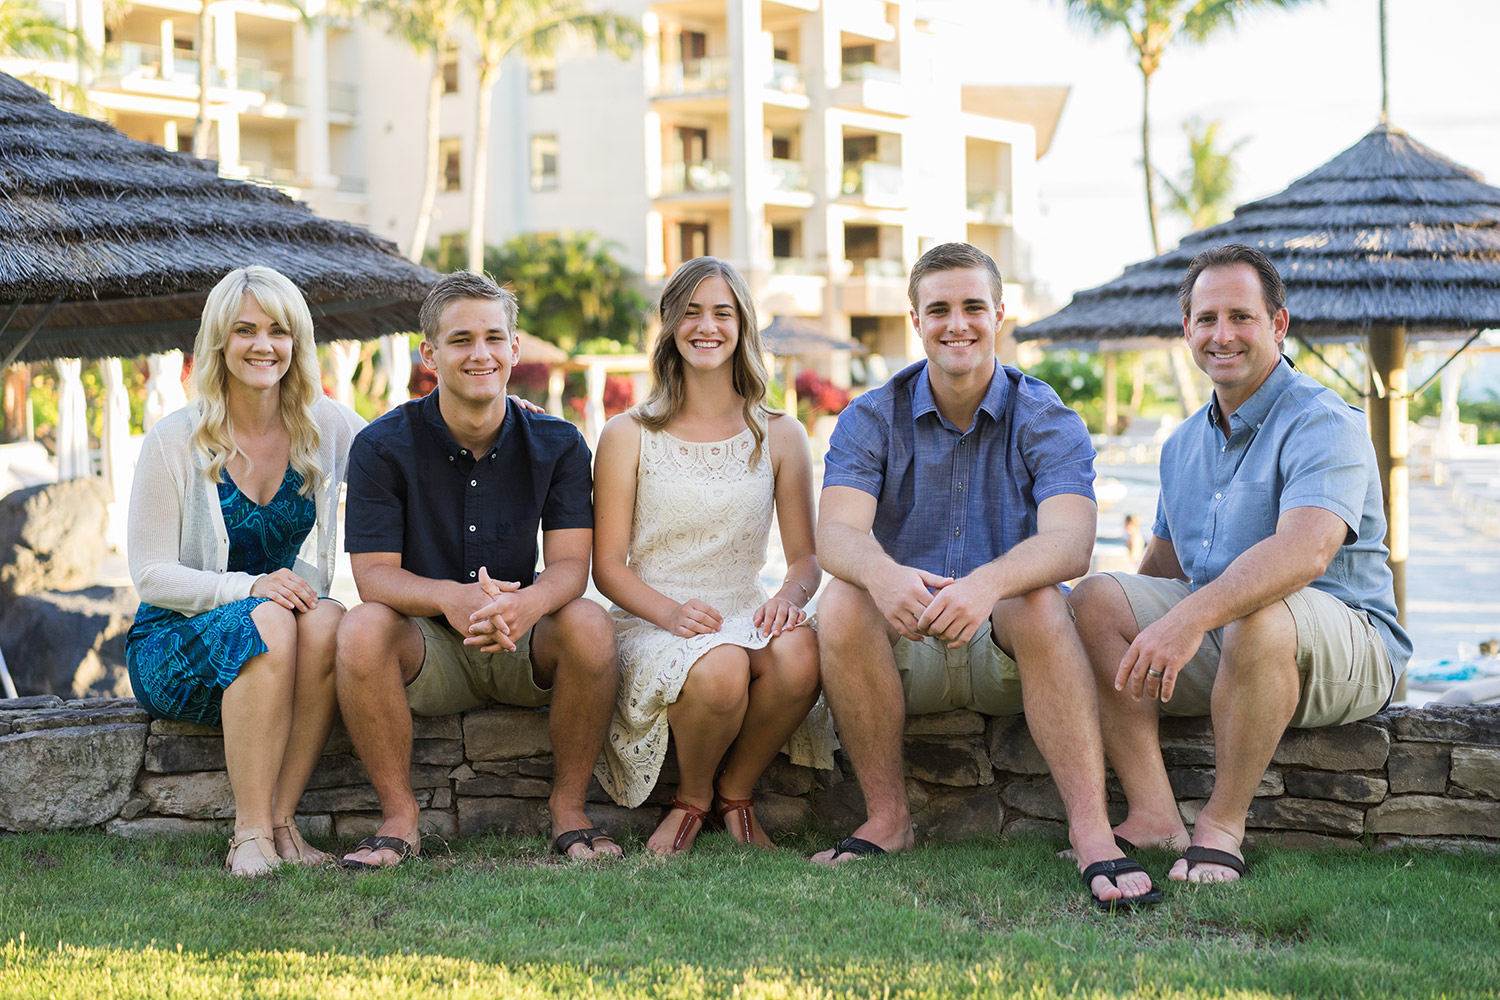 family-photo-shoot-Lahaina-segal.jpg